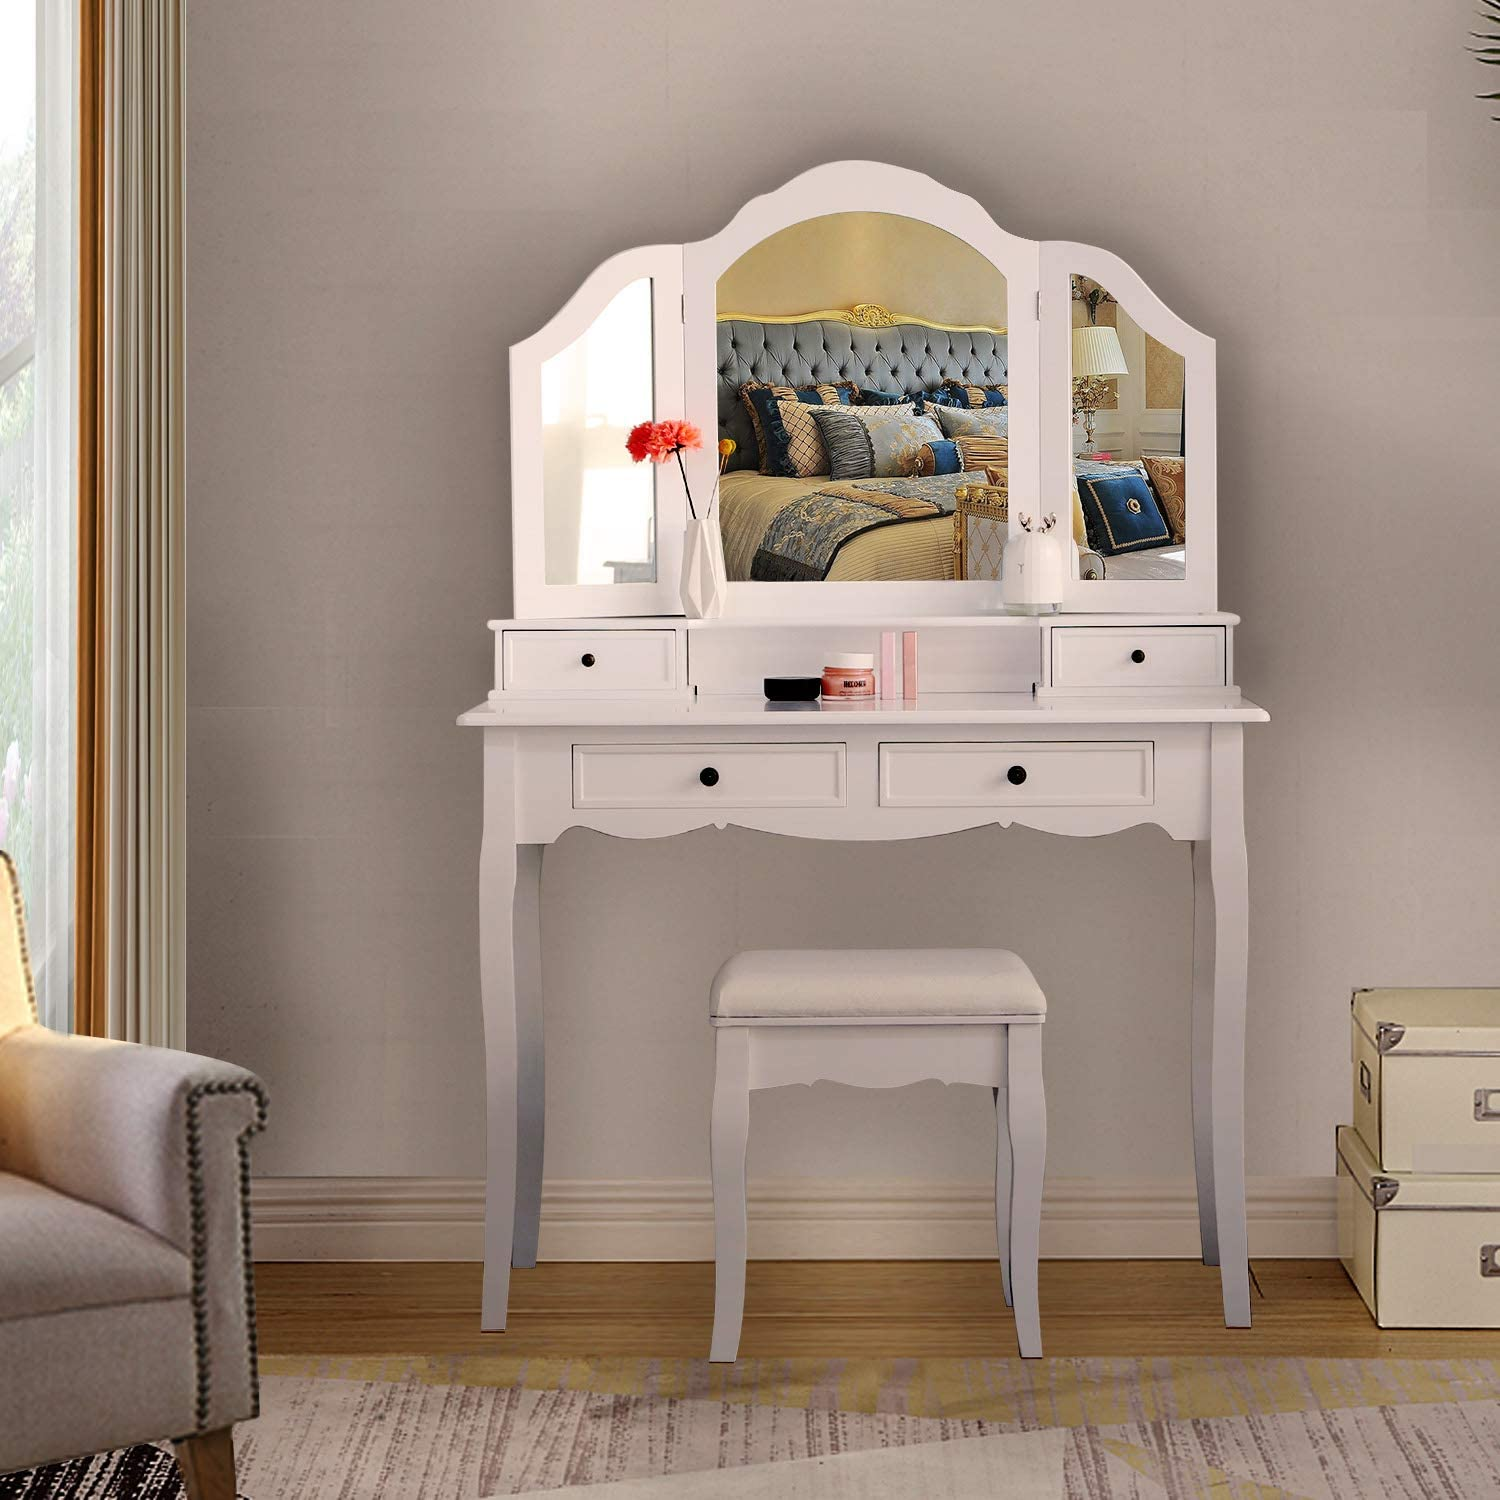 Dressing Table For Cosmetic Makeup With 3 Mirrors 4 Drawers And Stool Bedroom Makeup Set Table Bedroom Furniture Chair